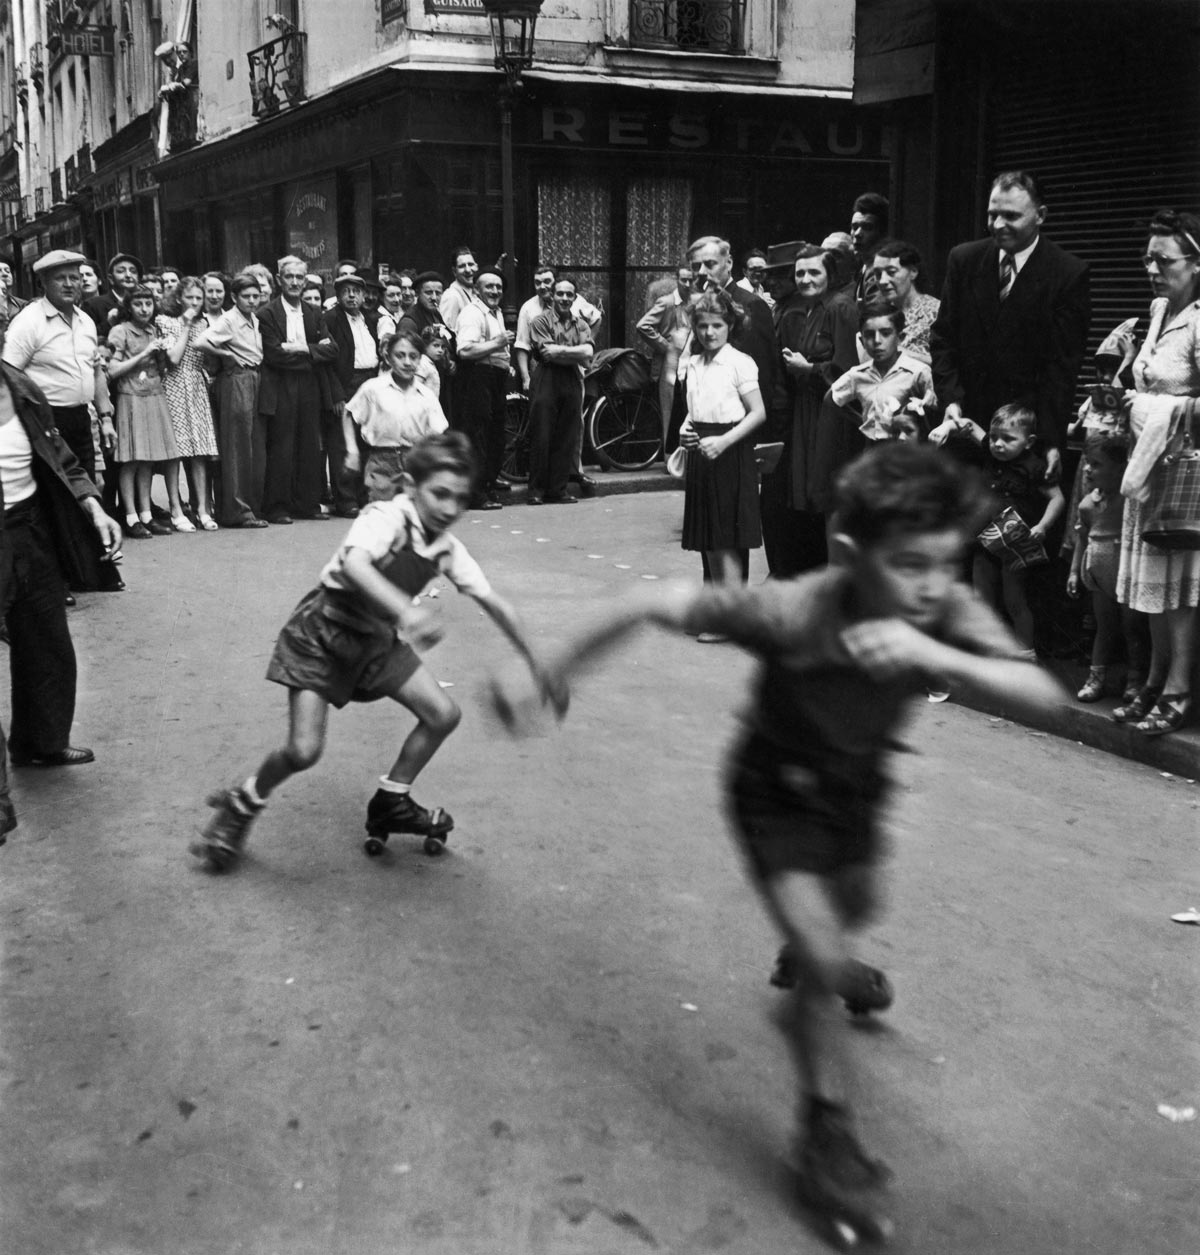 Doisneau - The rolling kids, July 14th (Bastille day) 1949, Paris